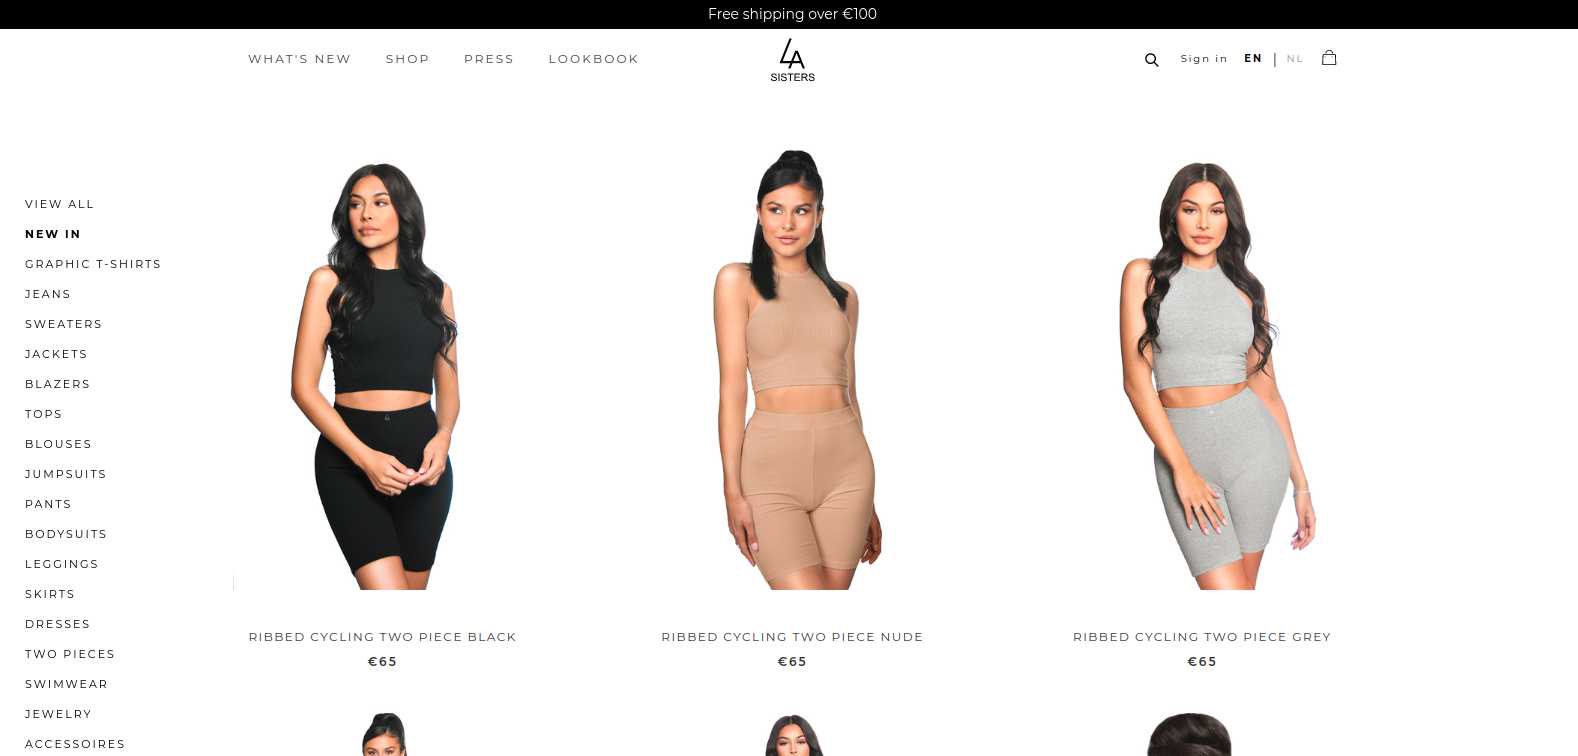 LASister ECommerce Page